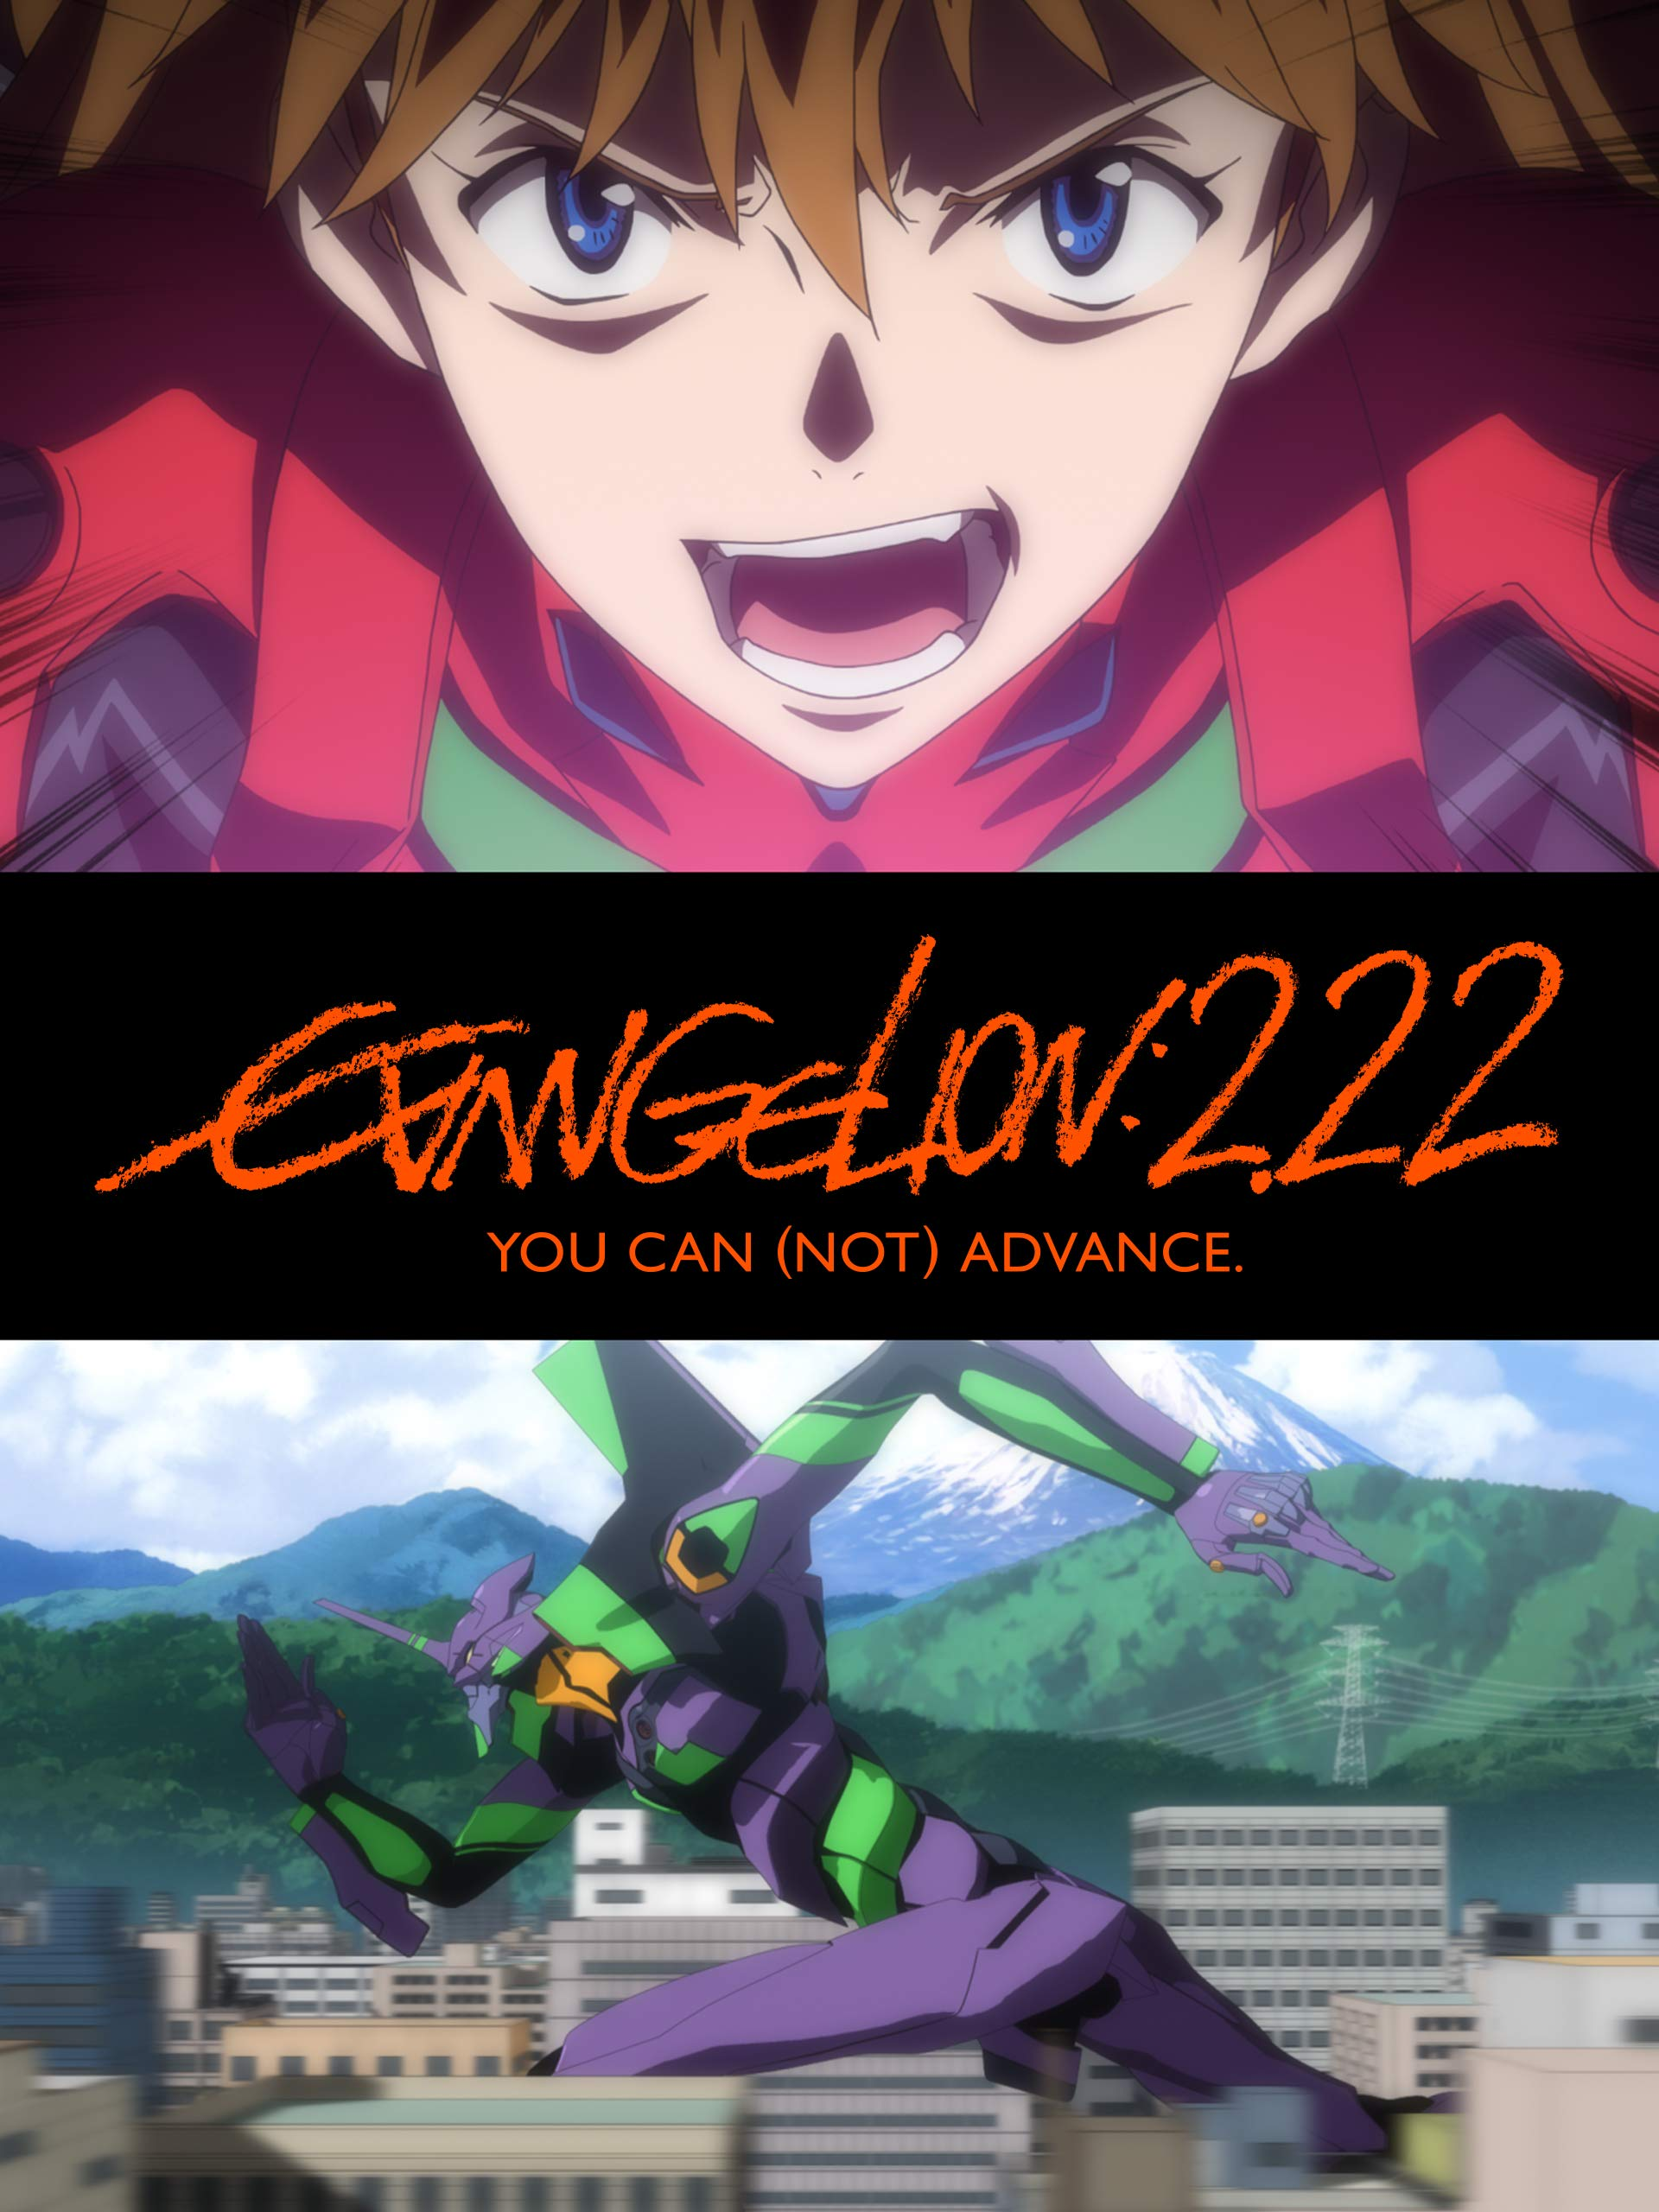 EVANGELION:2.22 YOU CAN (NOT) ADVANCE.